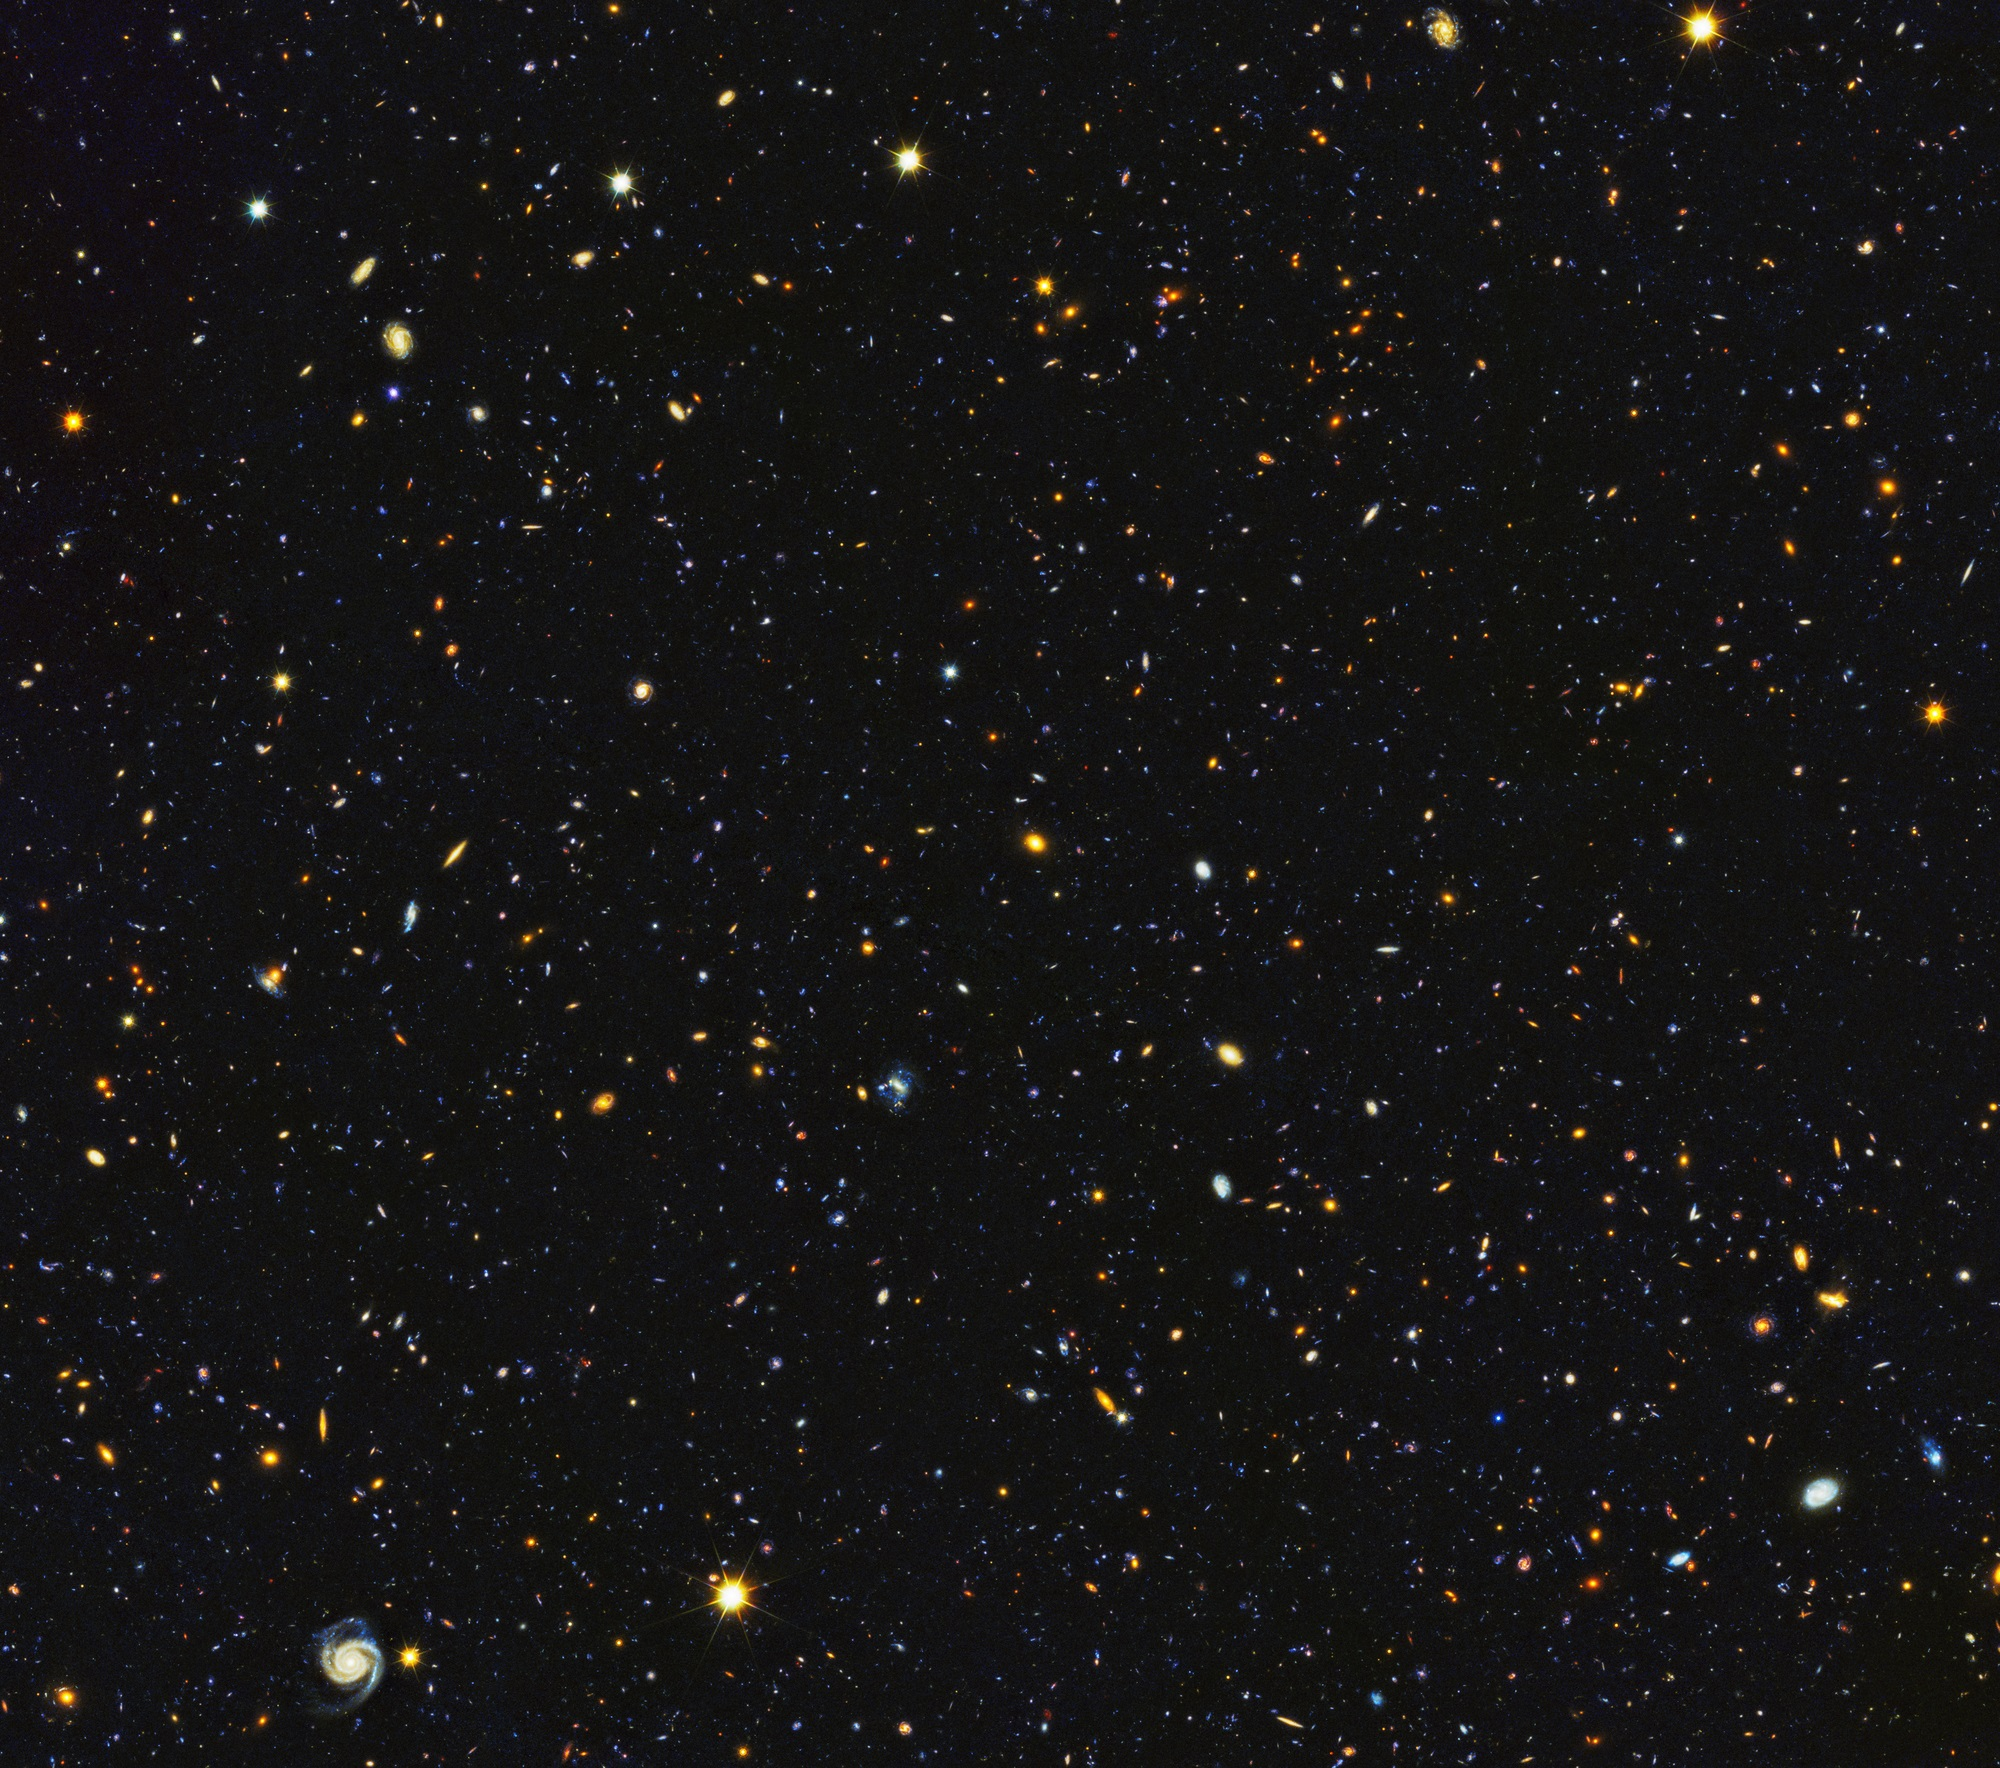 Astronomers have just assembled one of the most comprehensive portraits yet of the universe's evolutionary history, based on a broad spectrum of observations by the Hubble Space Telescope and other space and ground-based telescopes. In particular, Hubble's ultraviolet vision opens a new window on the evolving universe, tracking the birth of stars over the last 11 billion years back to the cosmos' busiest star-forming period, about 3 billion years after the big bang. This photo encompasses a sea of approximately 15,000 galaxies — 12,000 of which are star-forming — widely distributed in time and space. This mosaic is 14 times the area of the Hubble Ultra Violet Ultra Deep Field released in 2014.- Image Credits: NASA, ESA, P. Oesch (University of Geneva), and M. Montes (University of New South Wales)